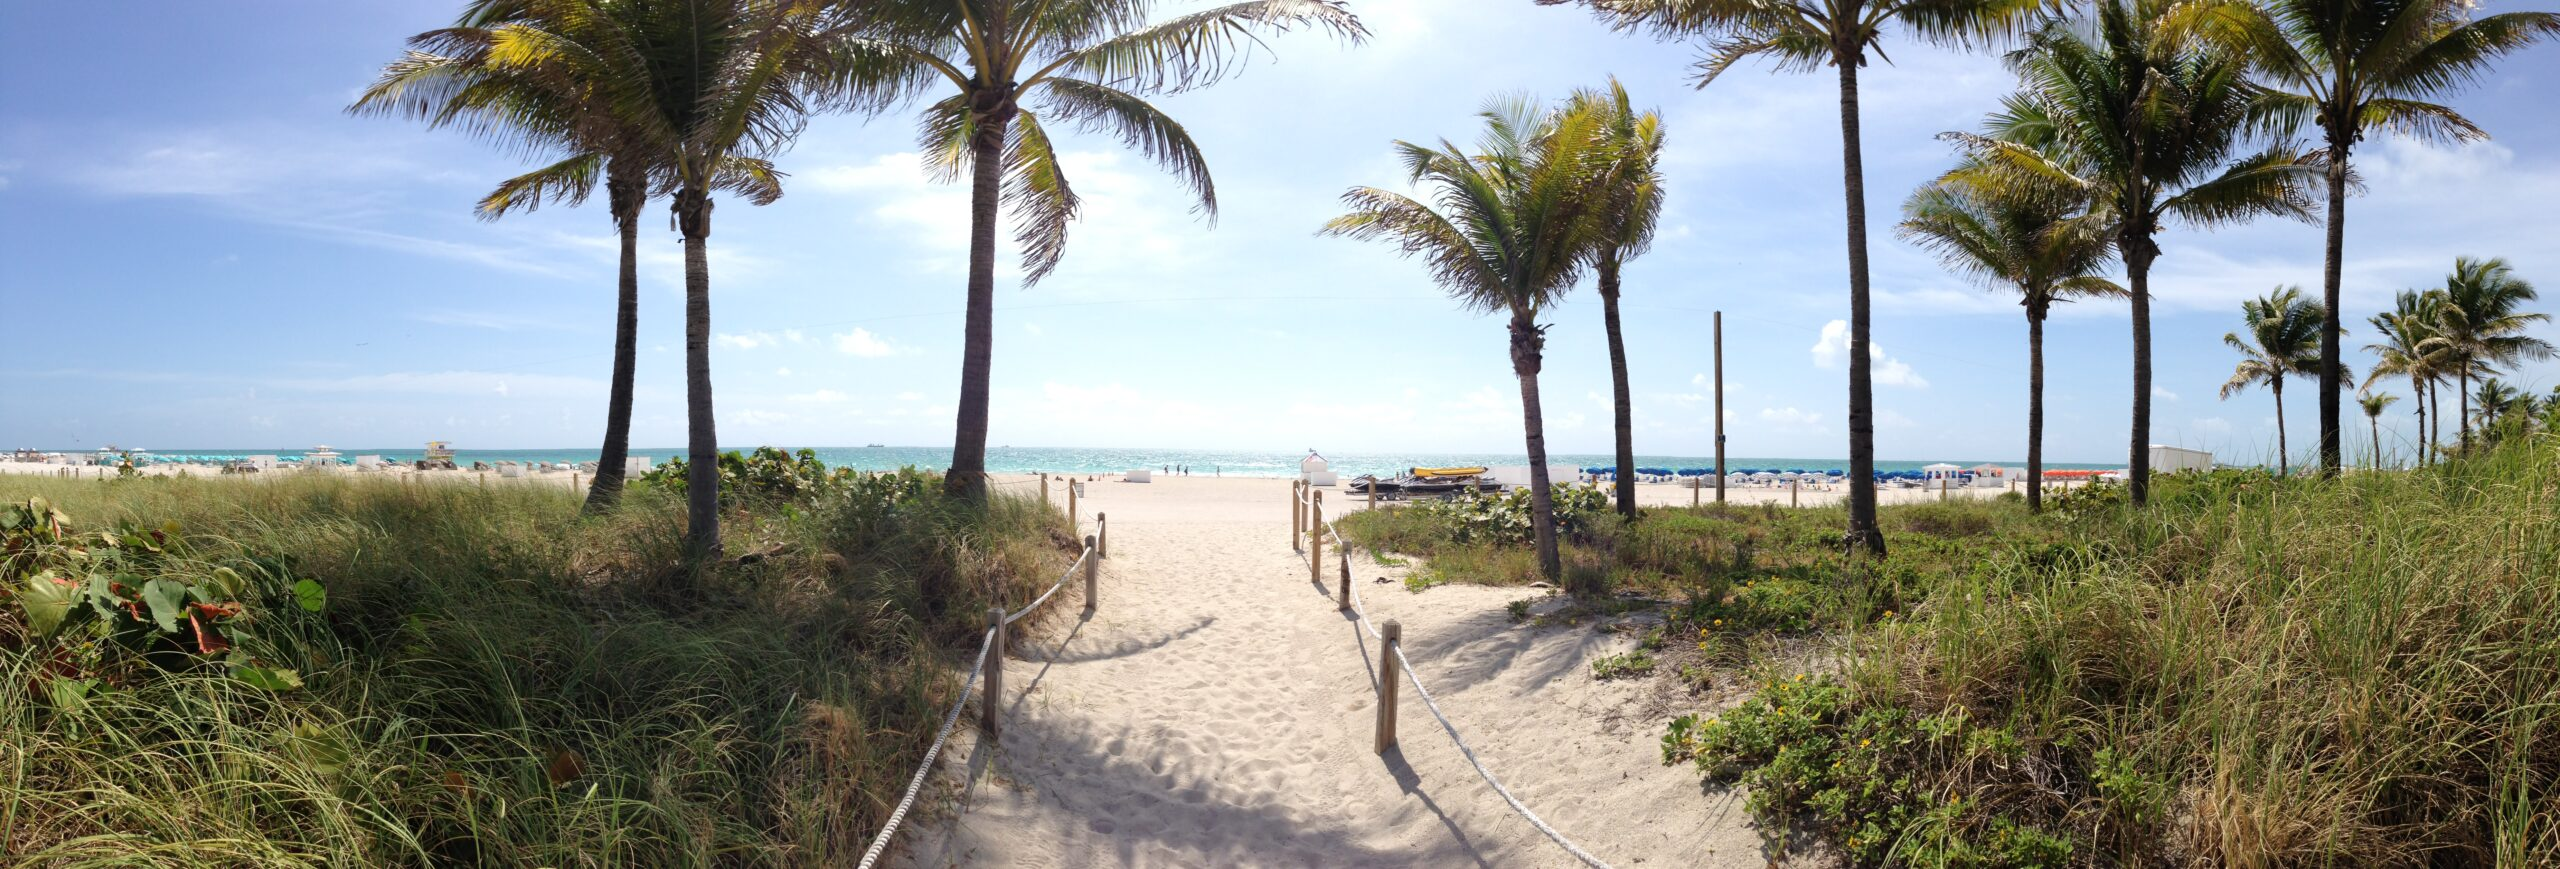 5 of the Best Beaches in South Florida to Visit in 2021